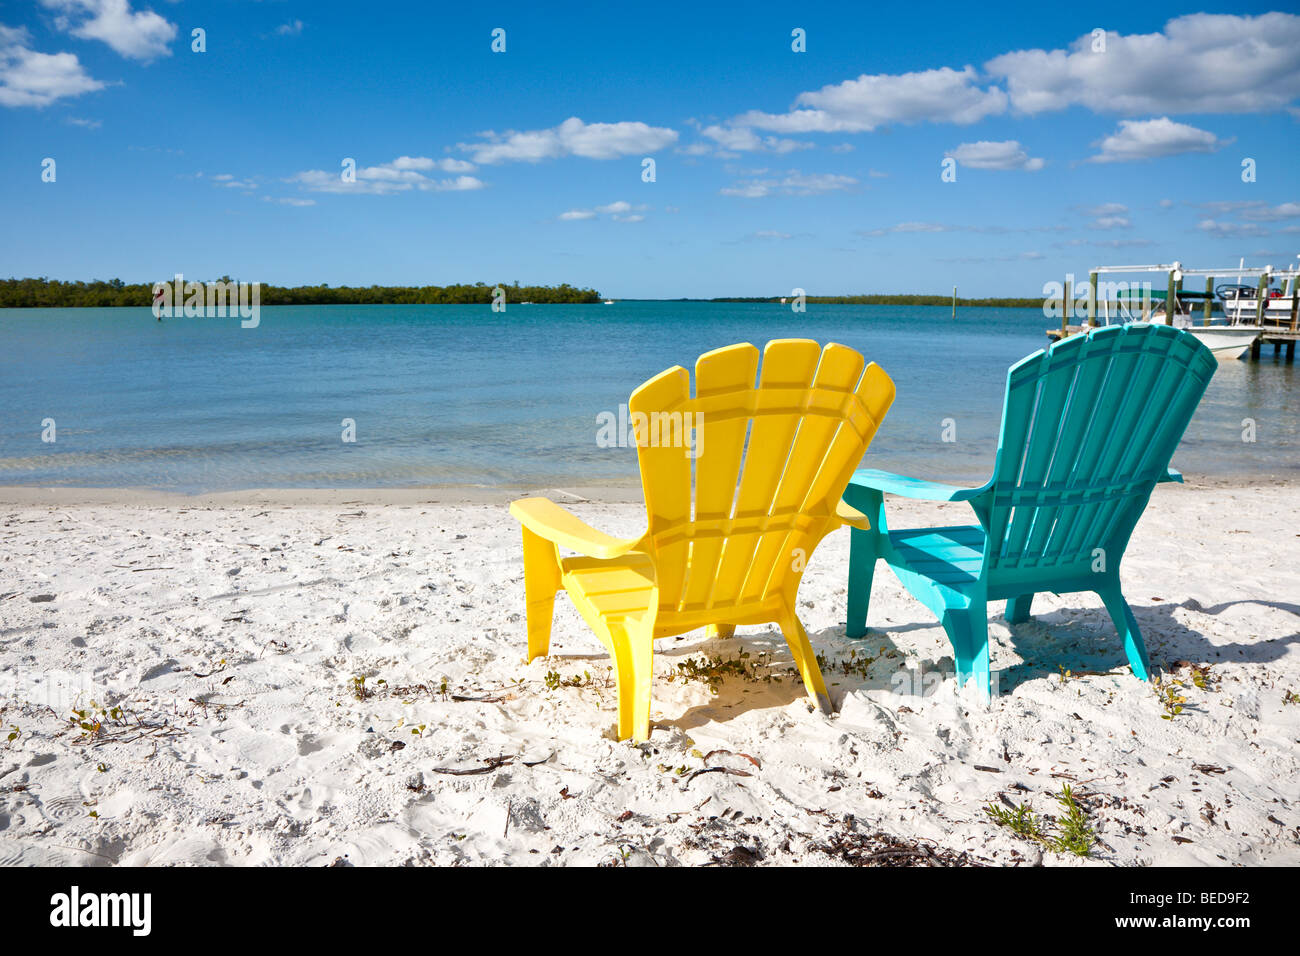 Attrayant Colorful Plastic U0027Adirondaku0027 Style Beach Chairs Face Into The Blue Ocean In  Naples,